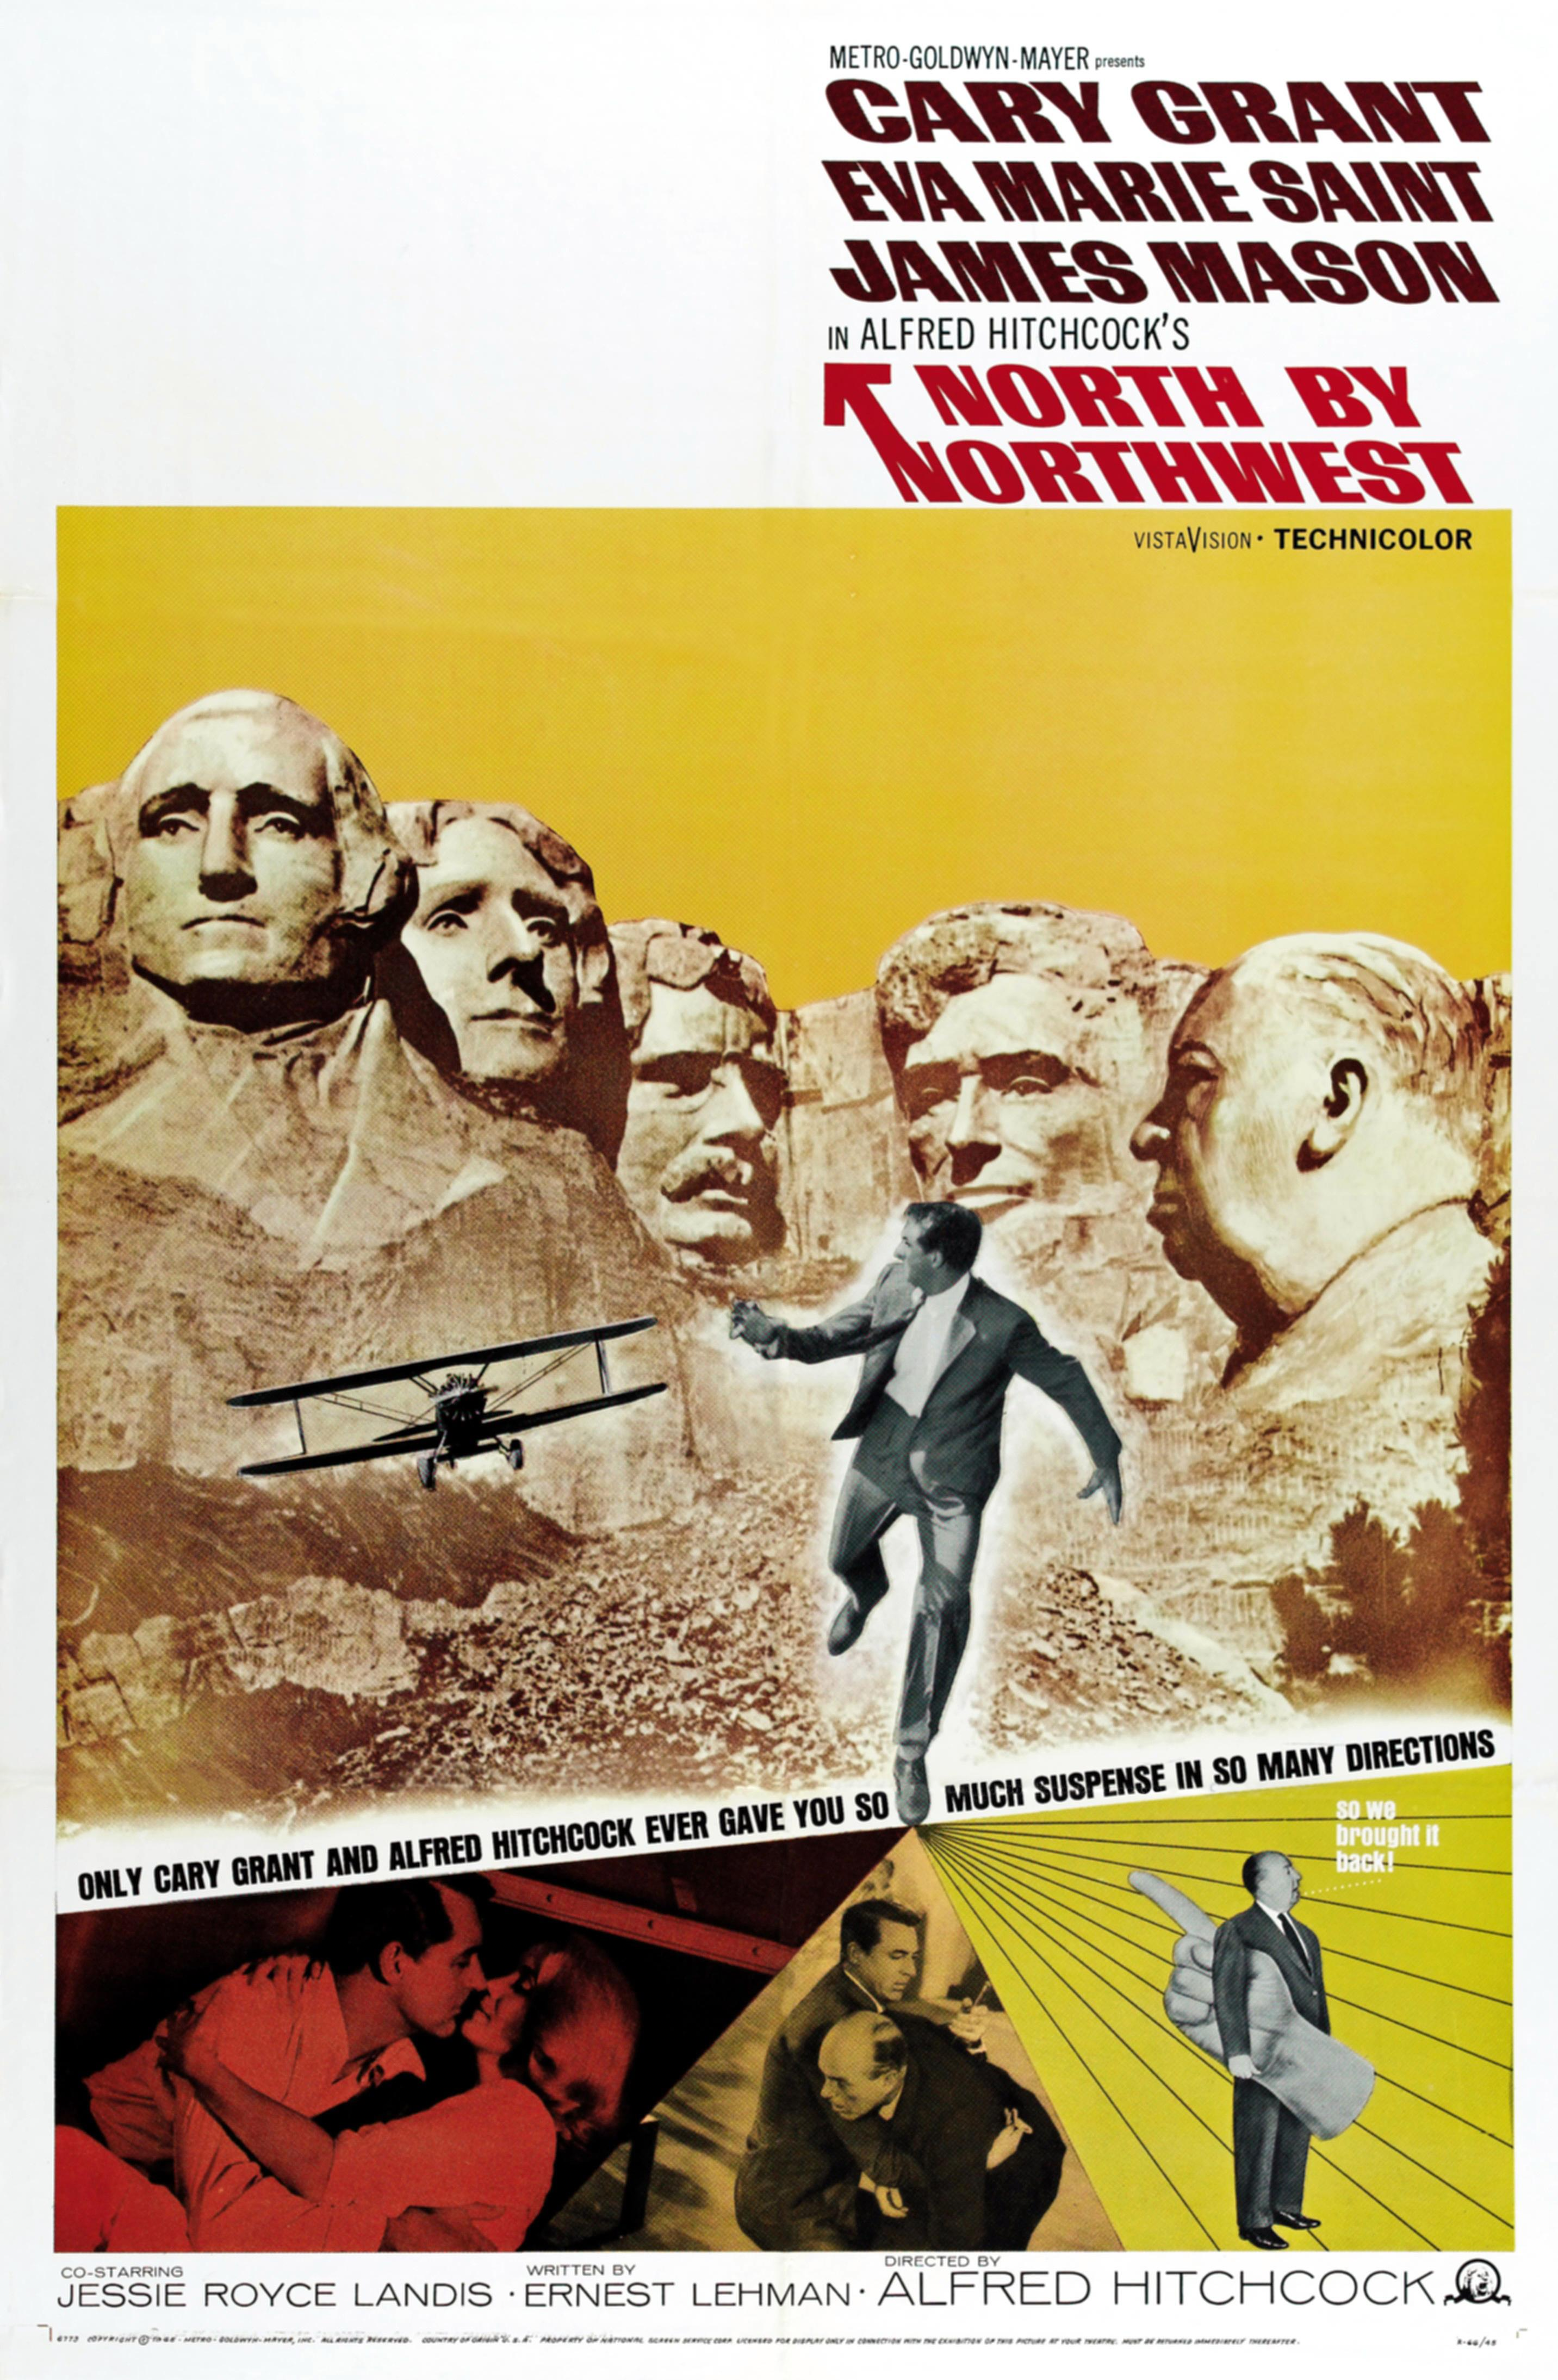 a review of northwests movie alfred hitchcocks (2018/2/19 7:51:00) good article we are linking to this great content on our website keep up the great writing website: knee active plus commenti.